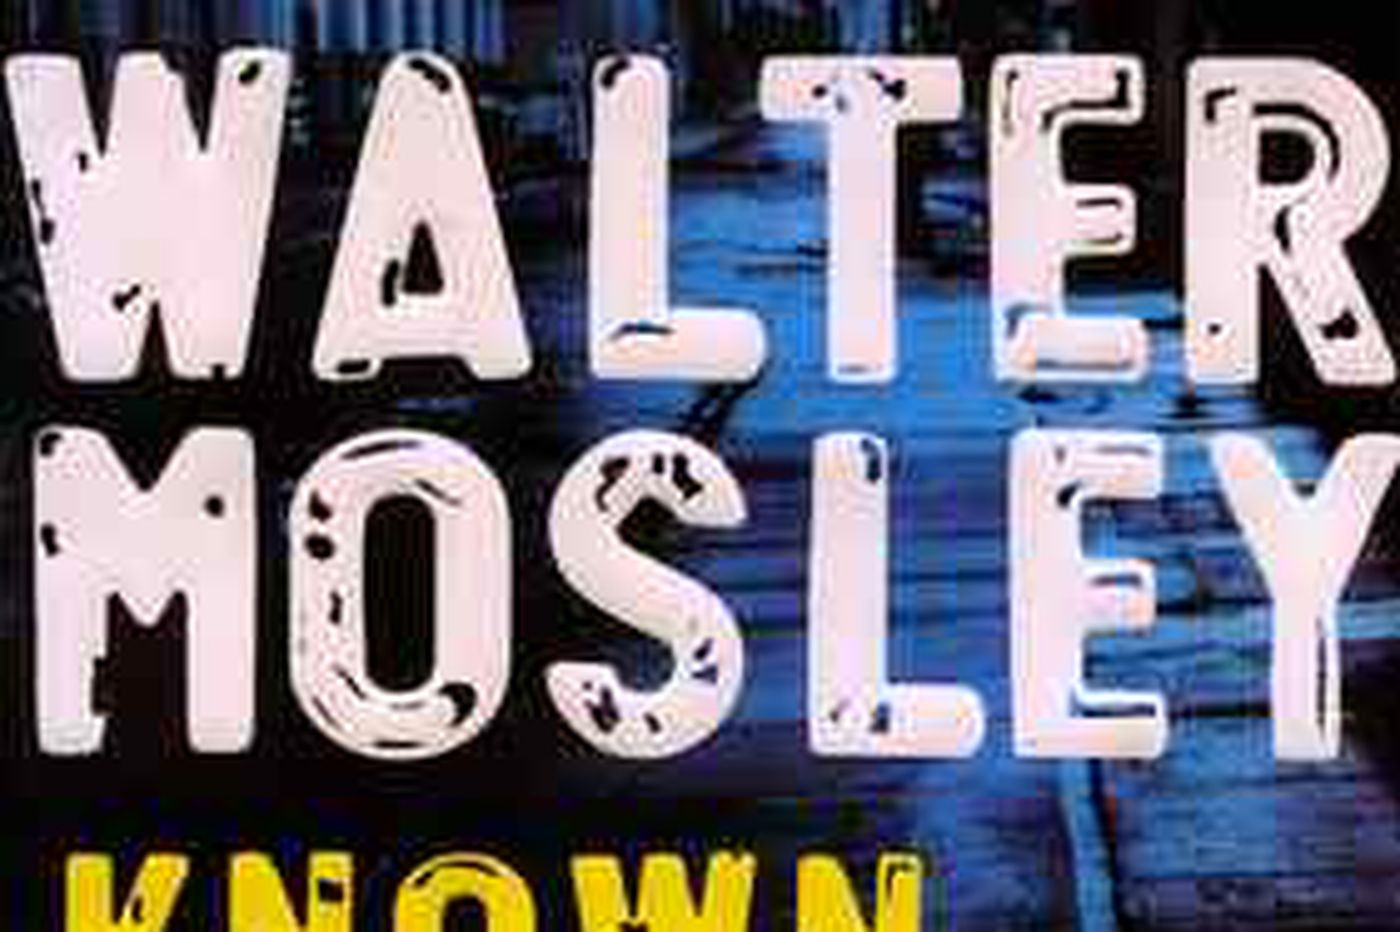 Second in a new series from Walter Mosley